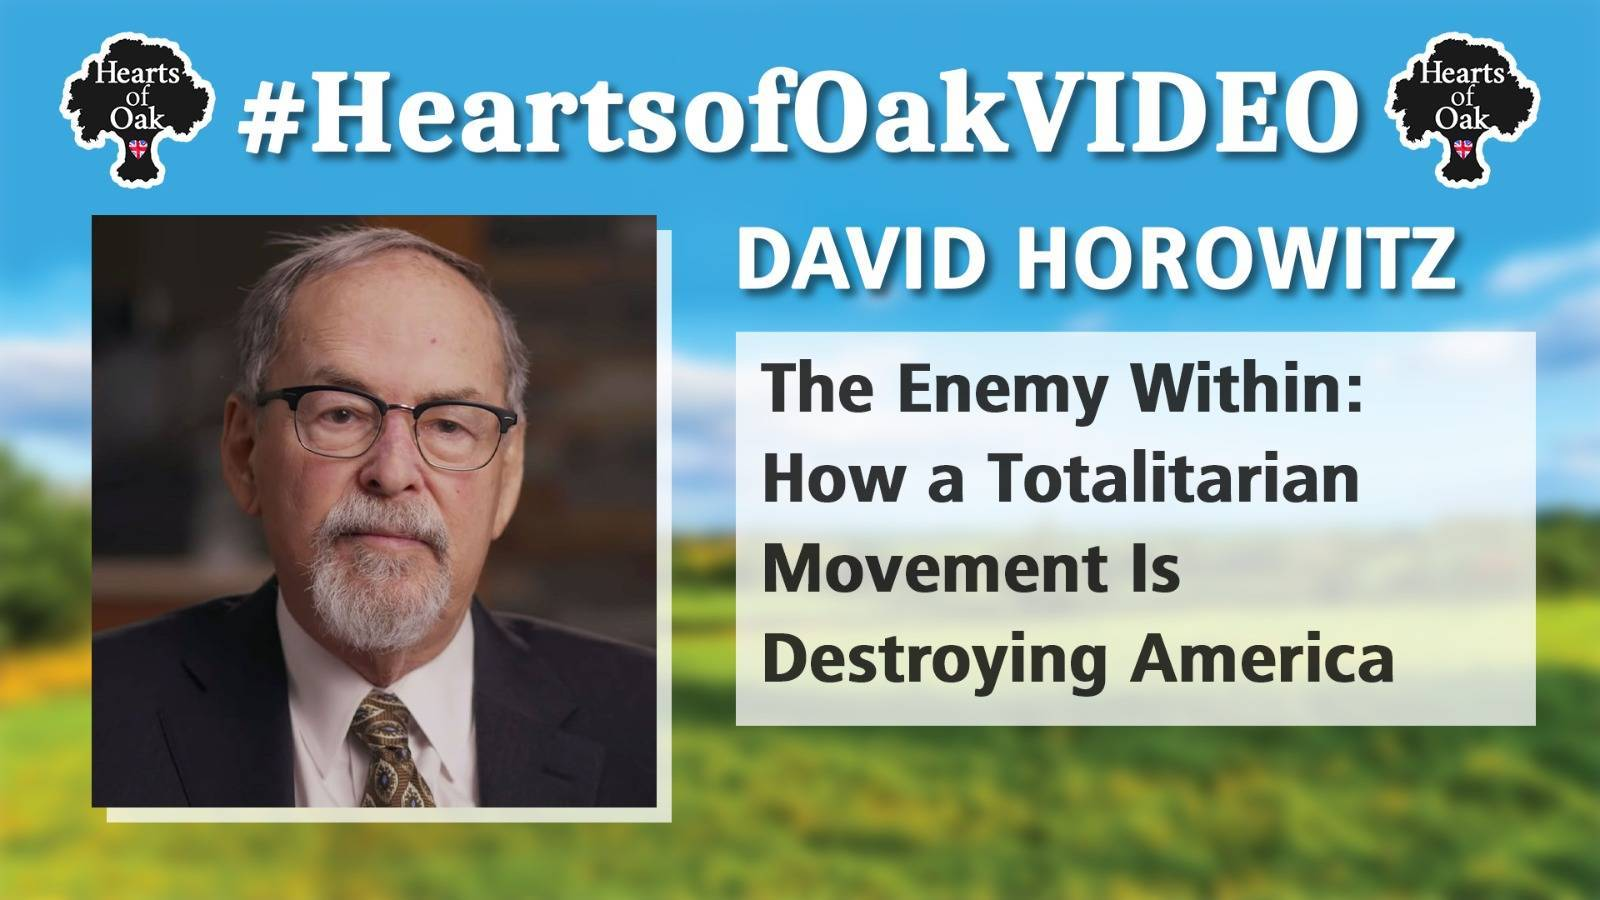 David Horowitz: The Enemy Within - How a Totalitarian Movement is Destroying America